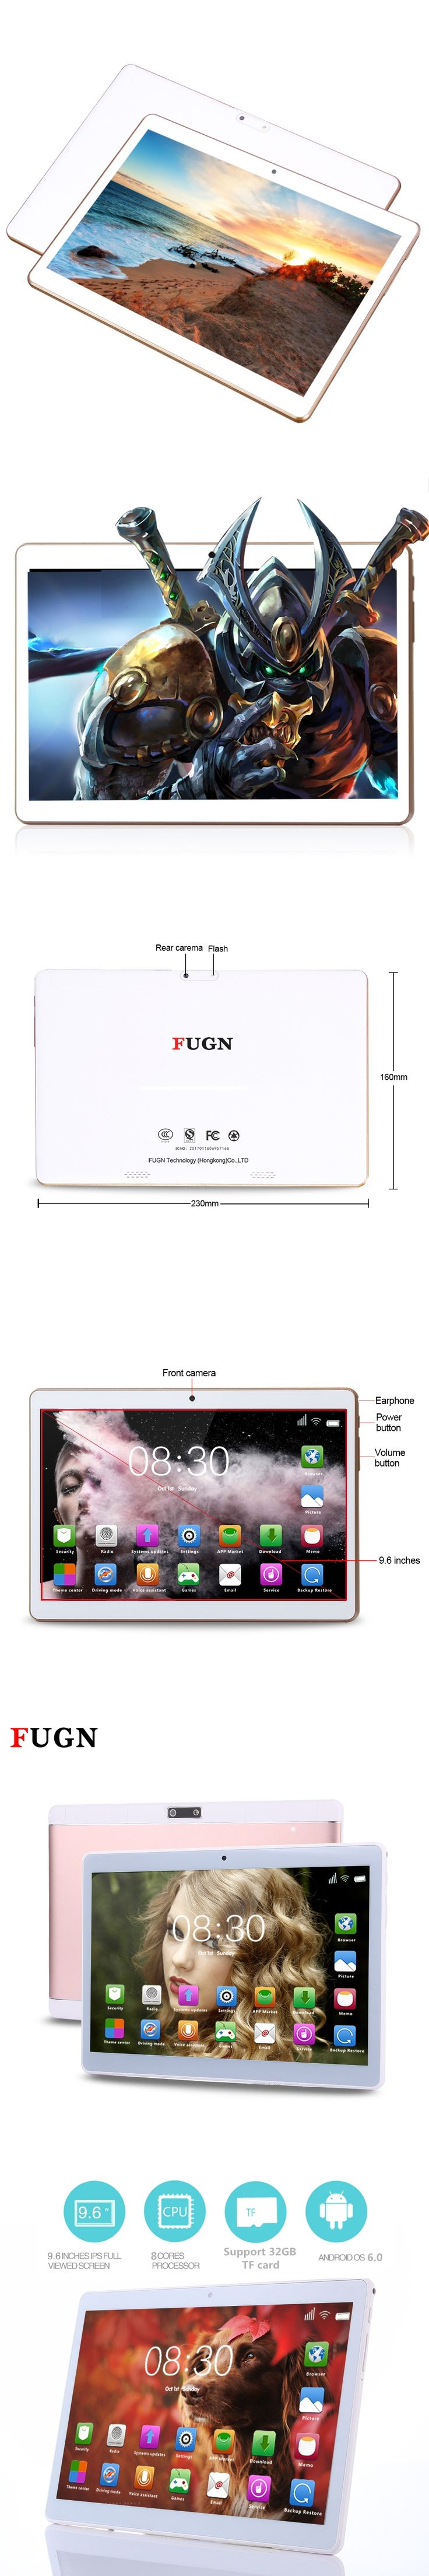 FUGN 9.7 inch Tablet PC for Kids Android 6.0 Drawing Tablet Octa Core 4GB RAM Wifi GPS Dual Cameras Phone Call Tablets 8 10'